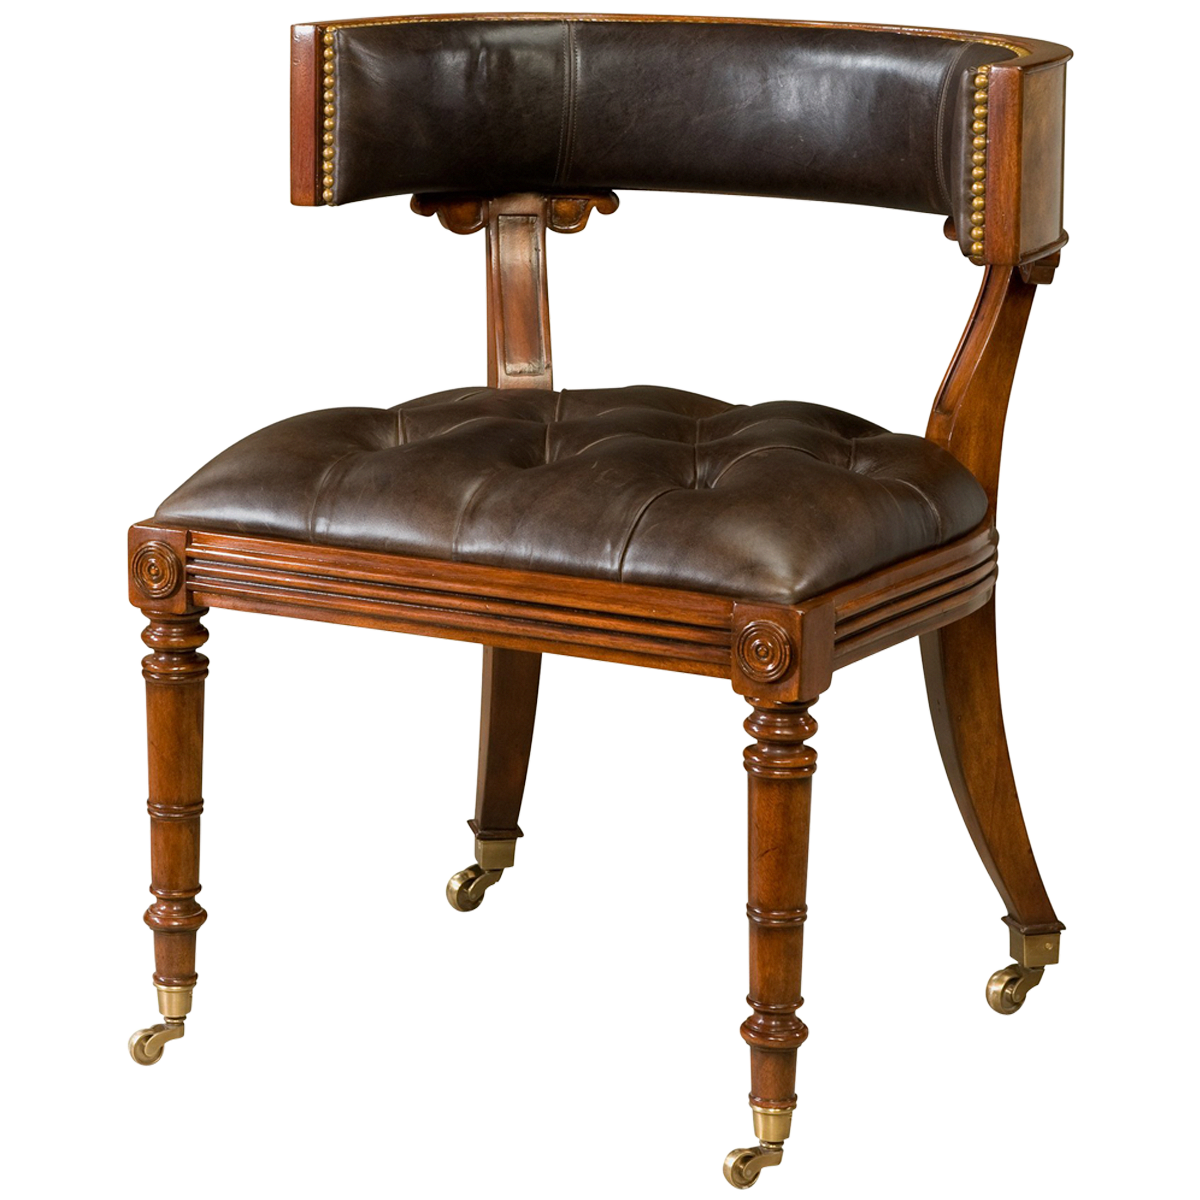 georgian style library chair librarychair counter height chairs rh pinterest com